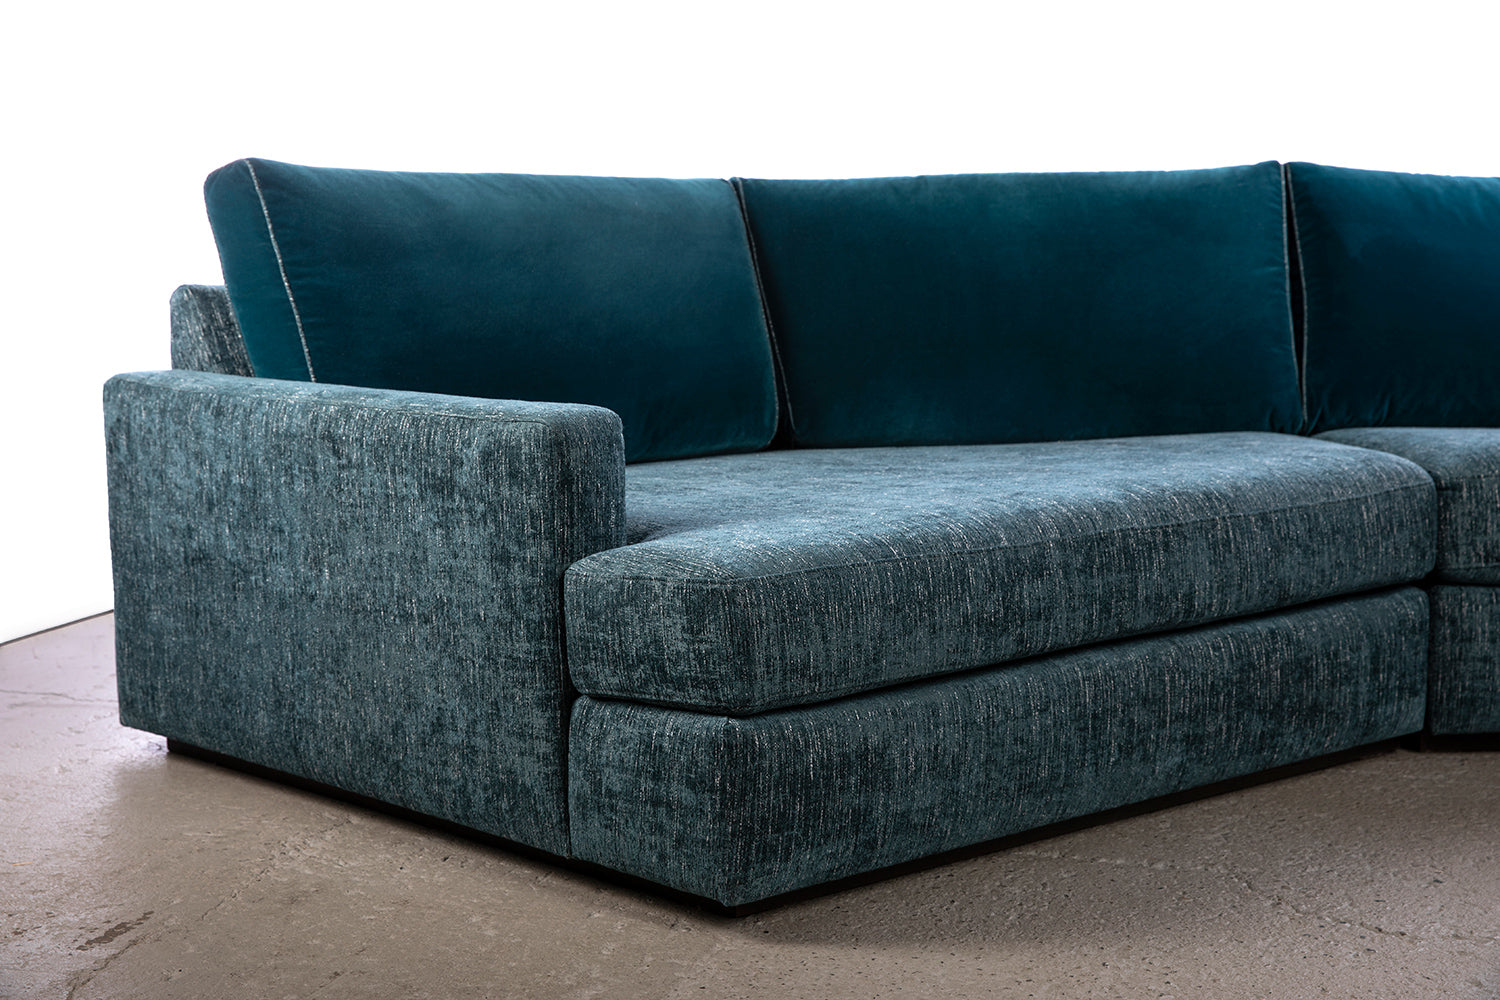 ffabb Coasty Slim modular Sectional in peacock mohair